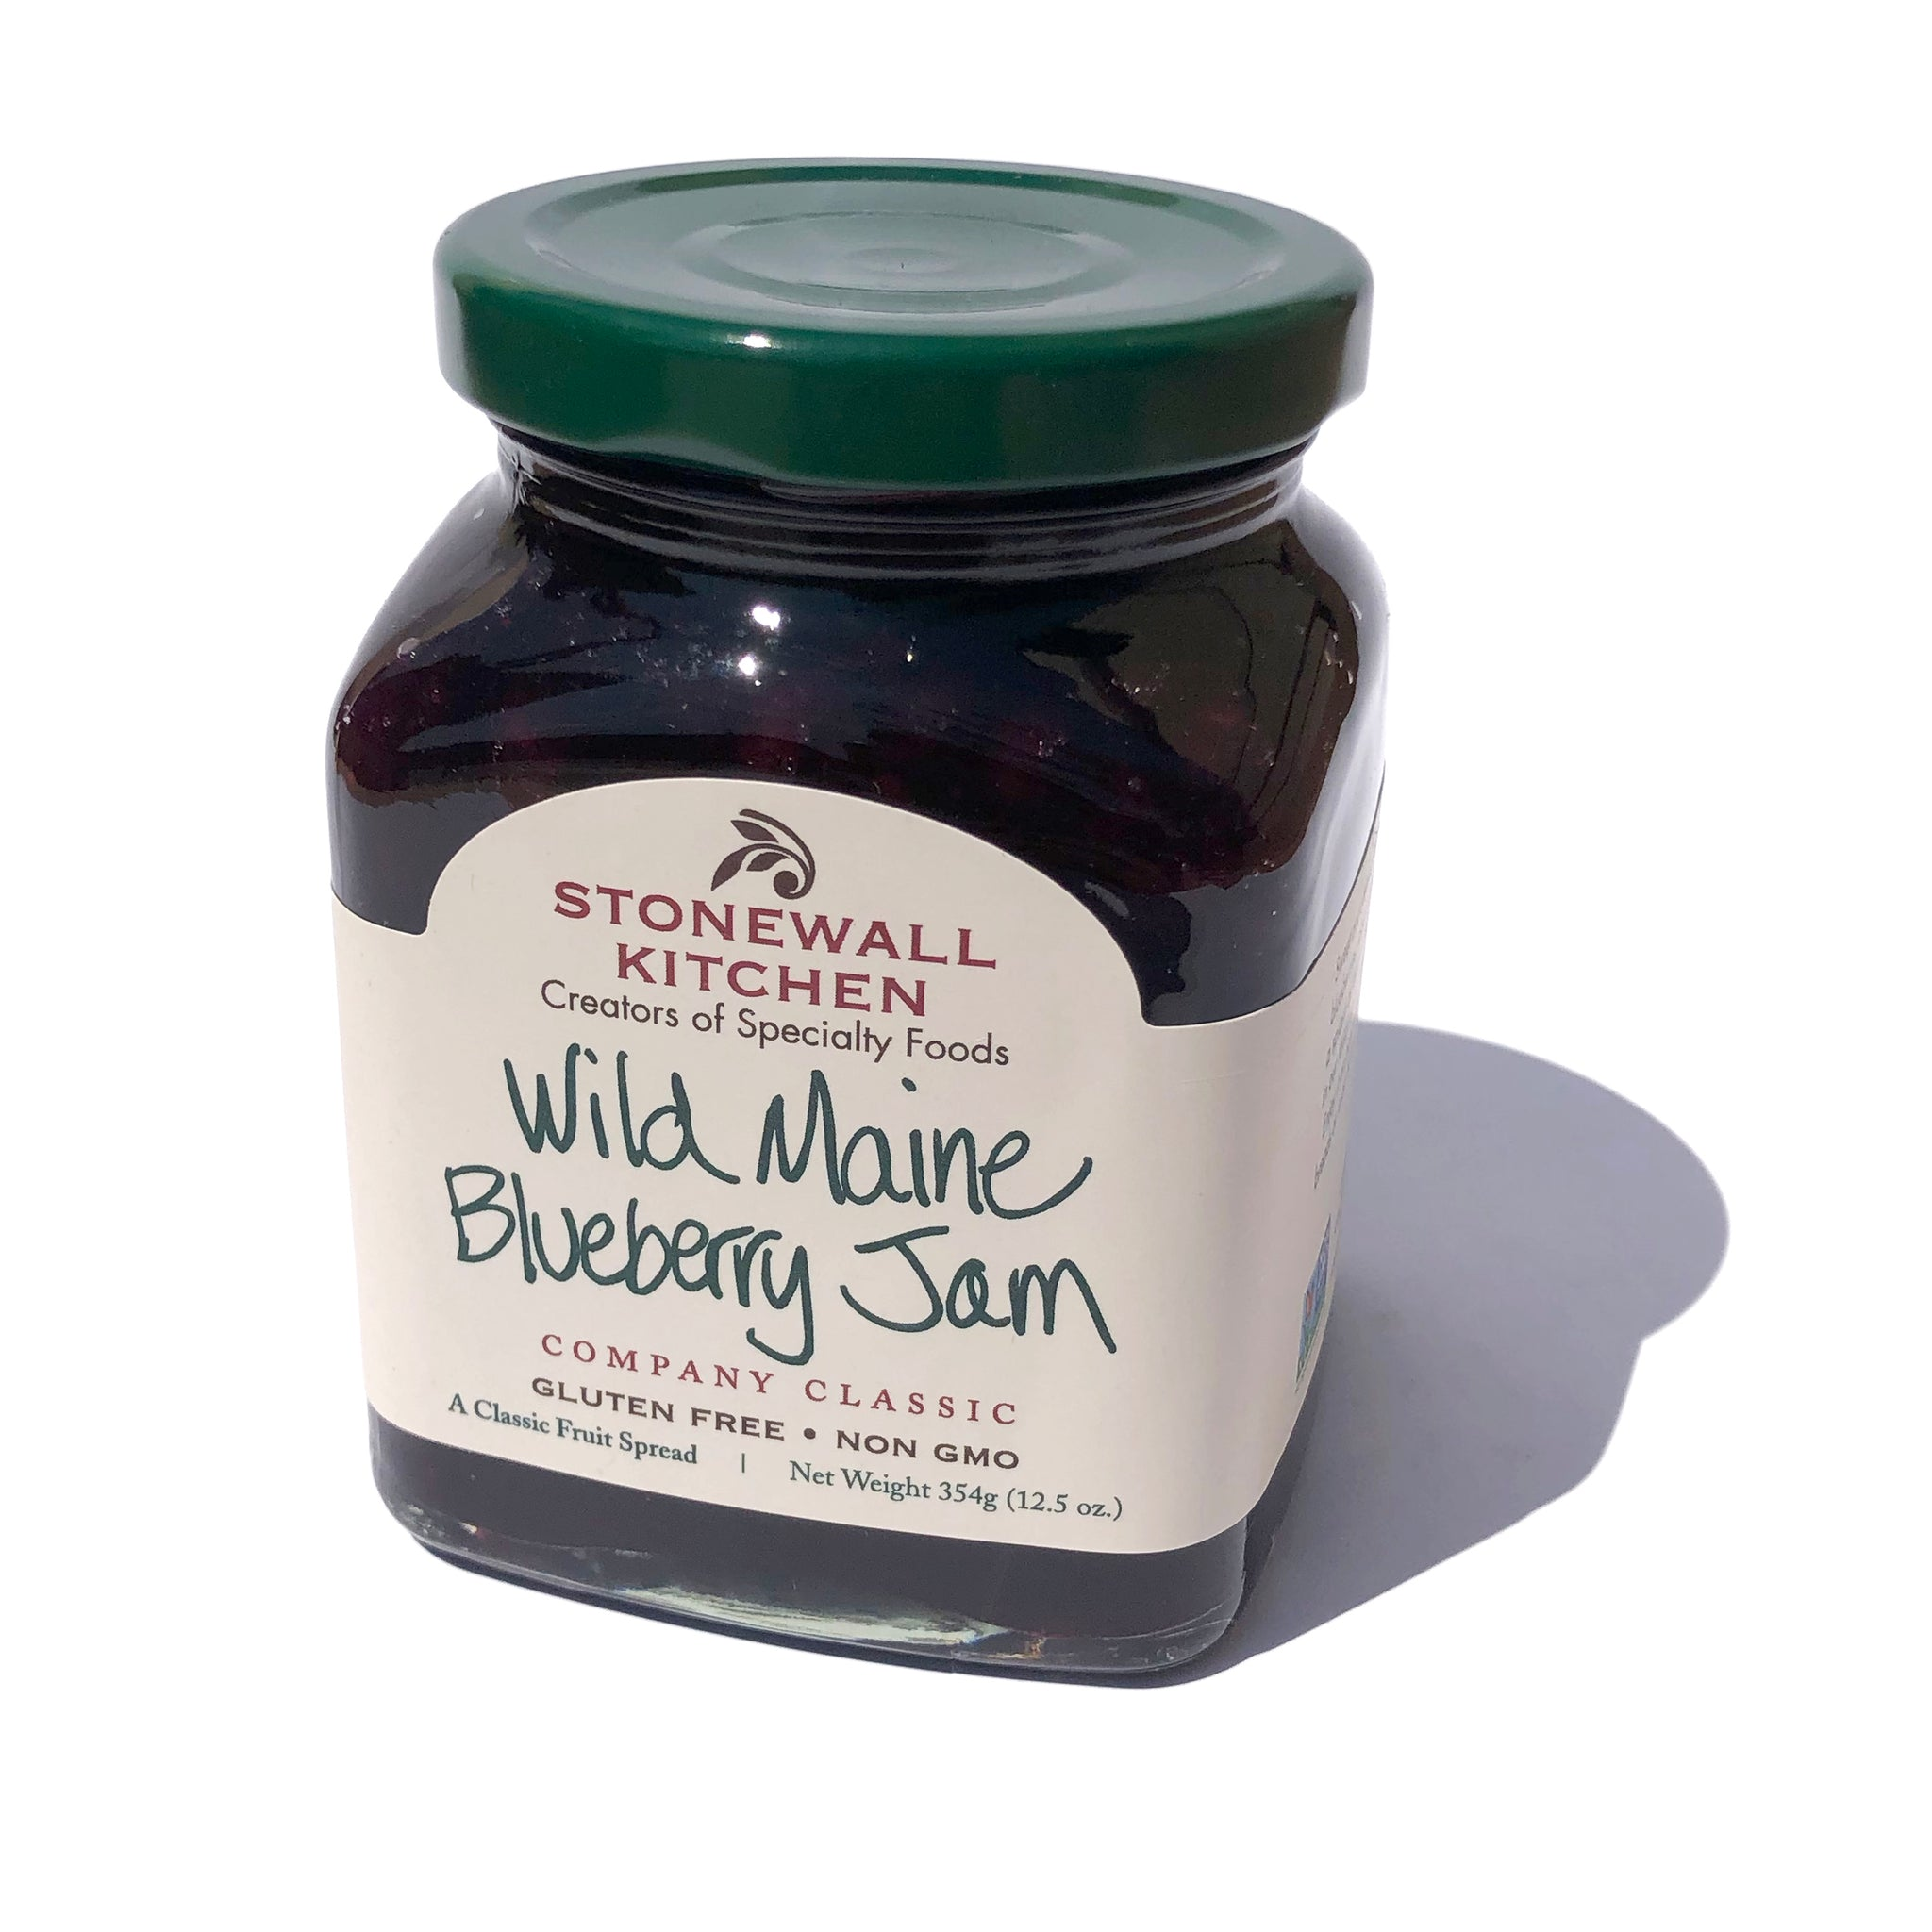 Stonewall Kitchen Wild Main Blueberry Jam, 12.5oz